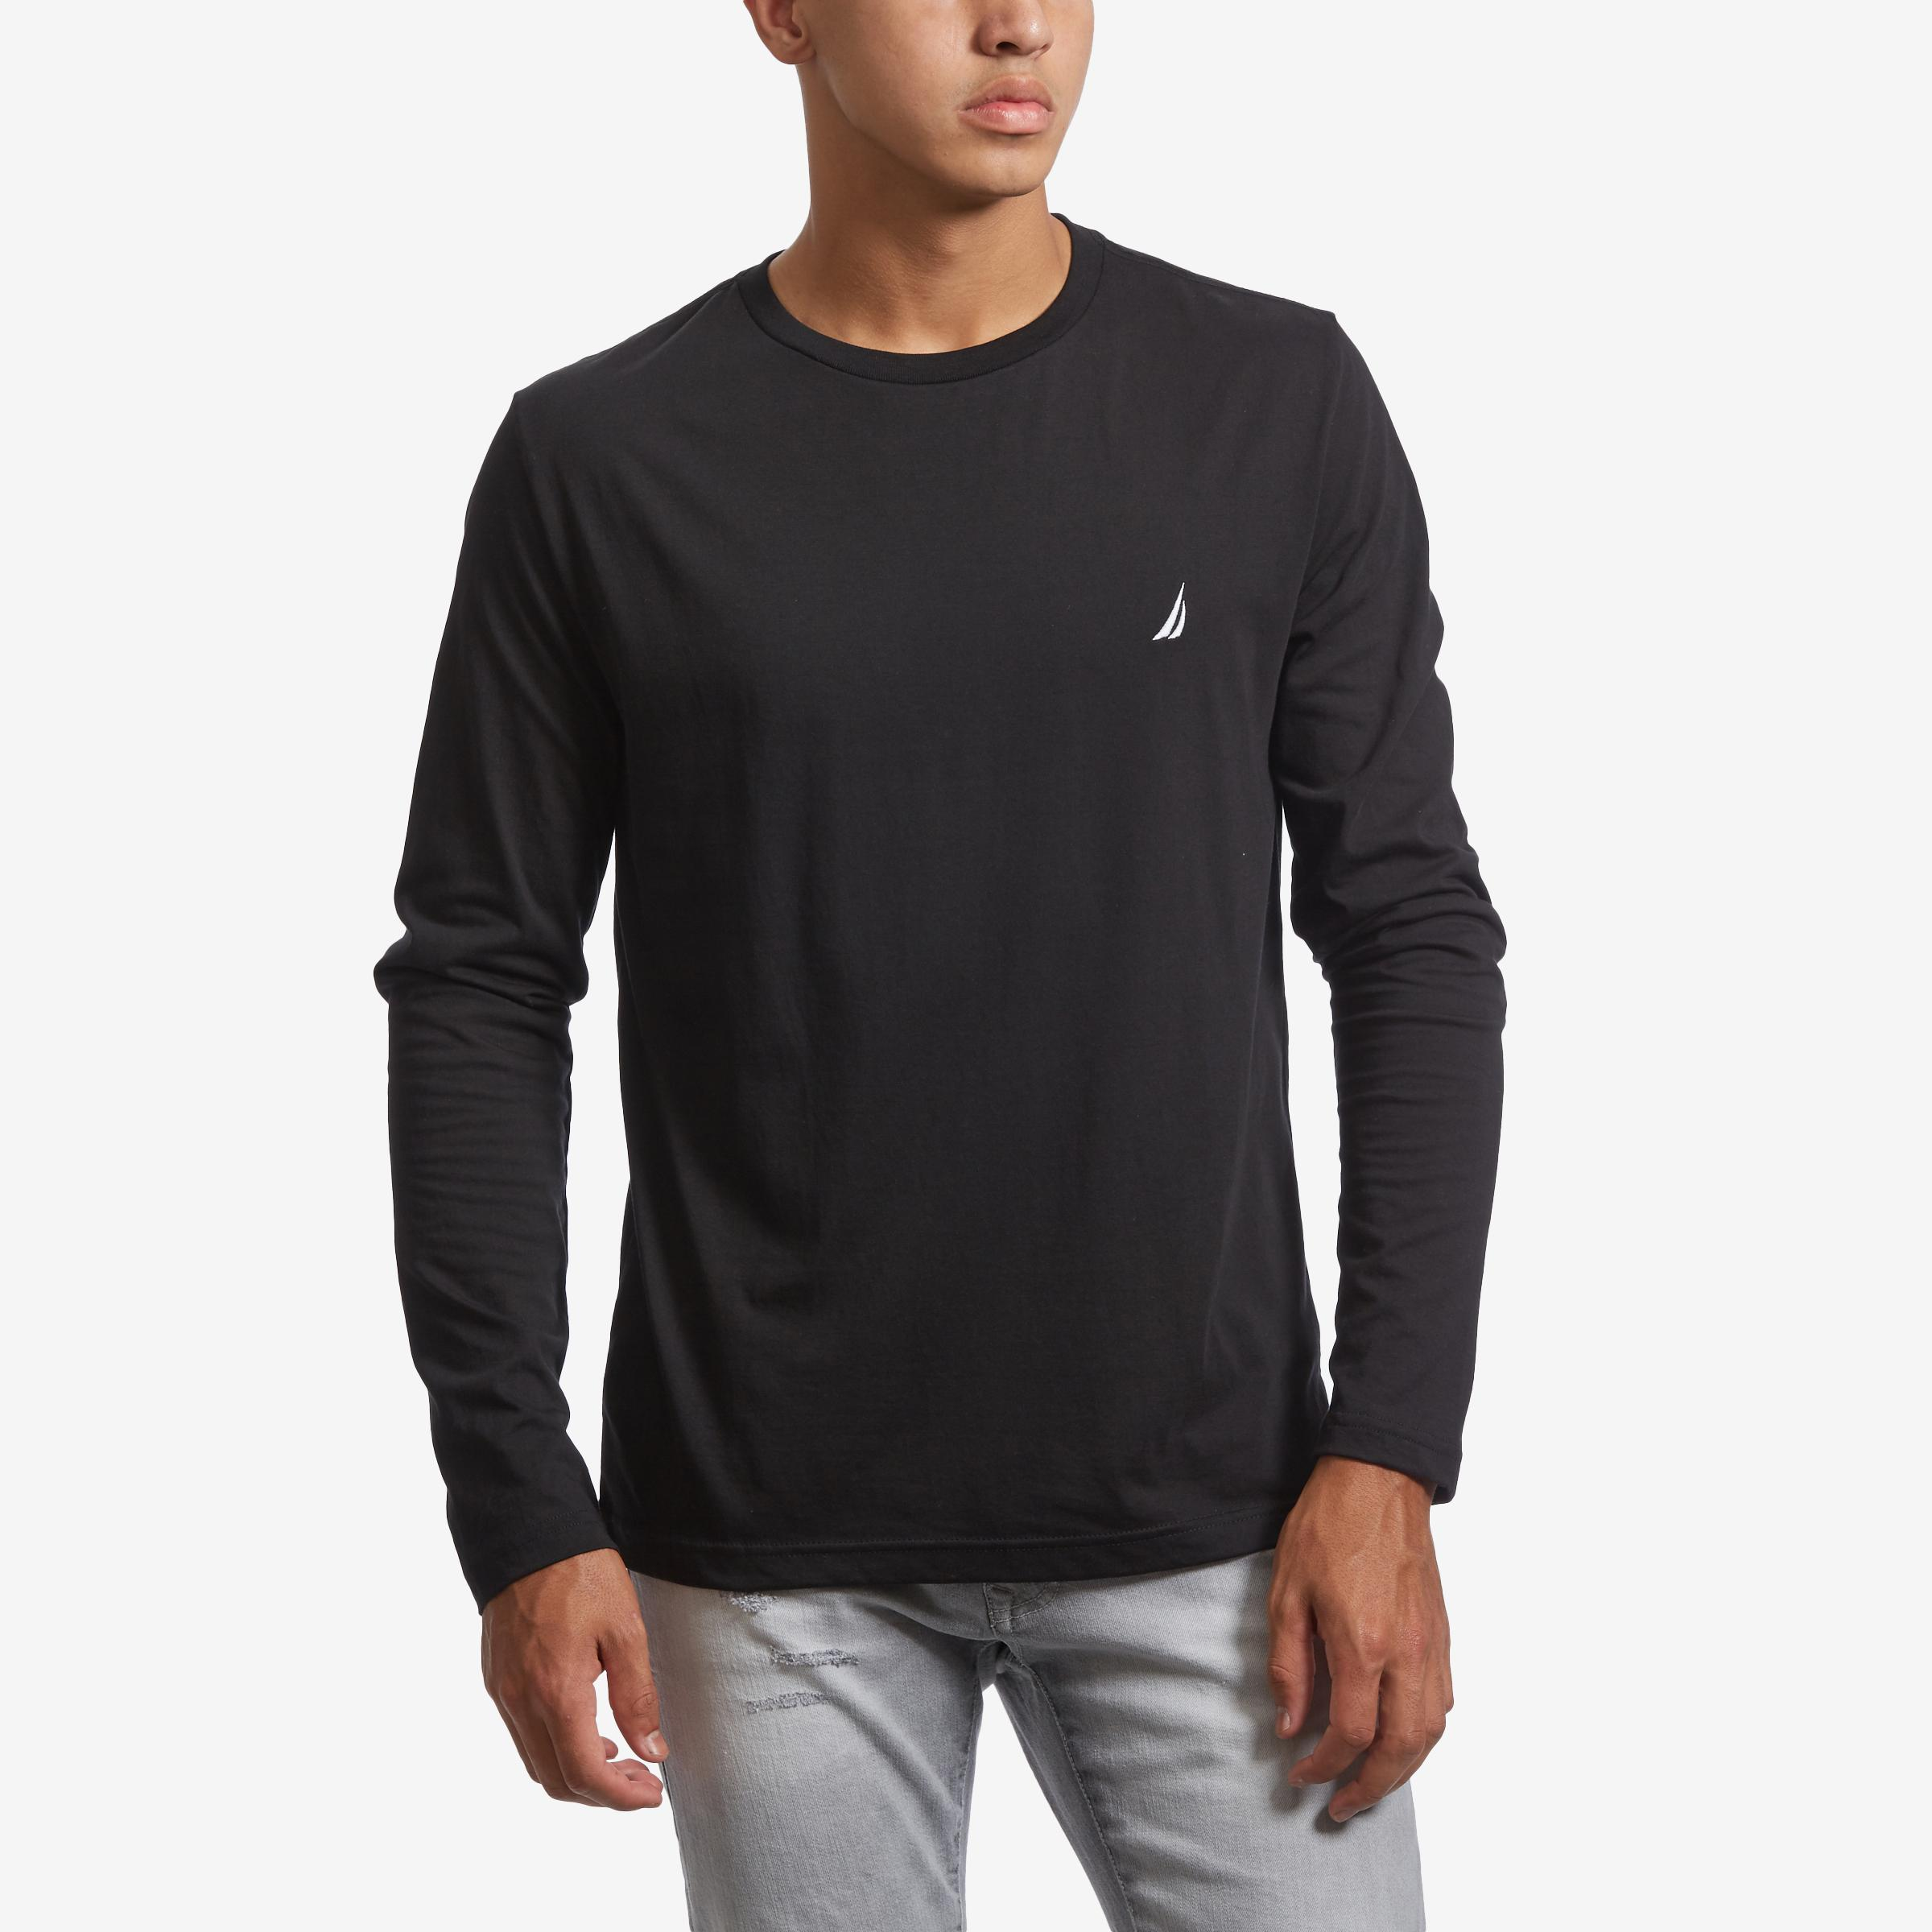 Men's Long Sleeve Crew Neck T- Shirt